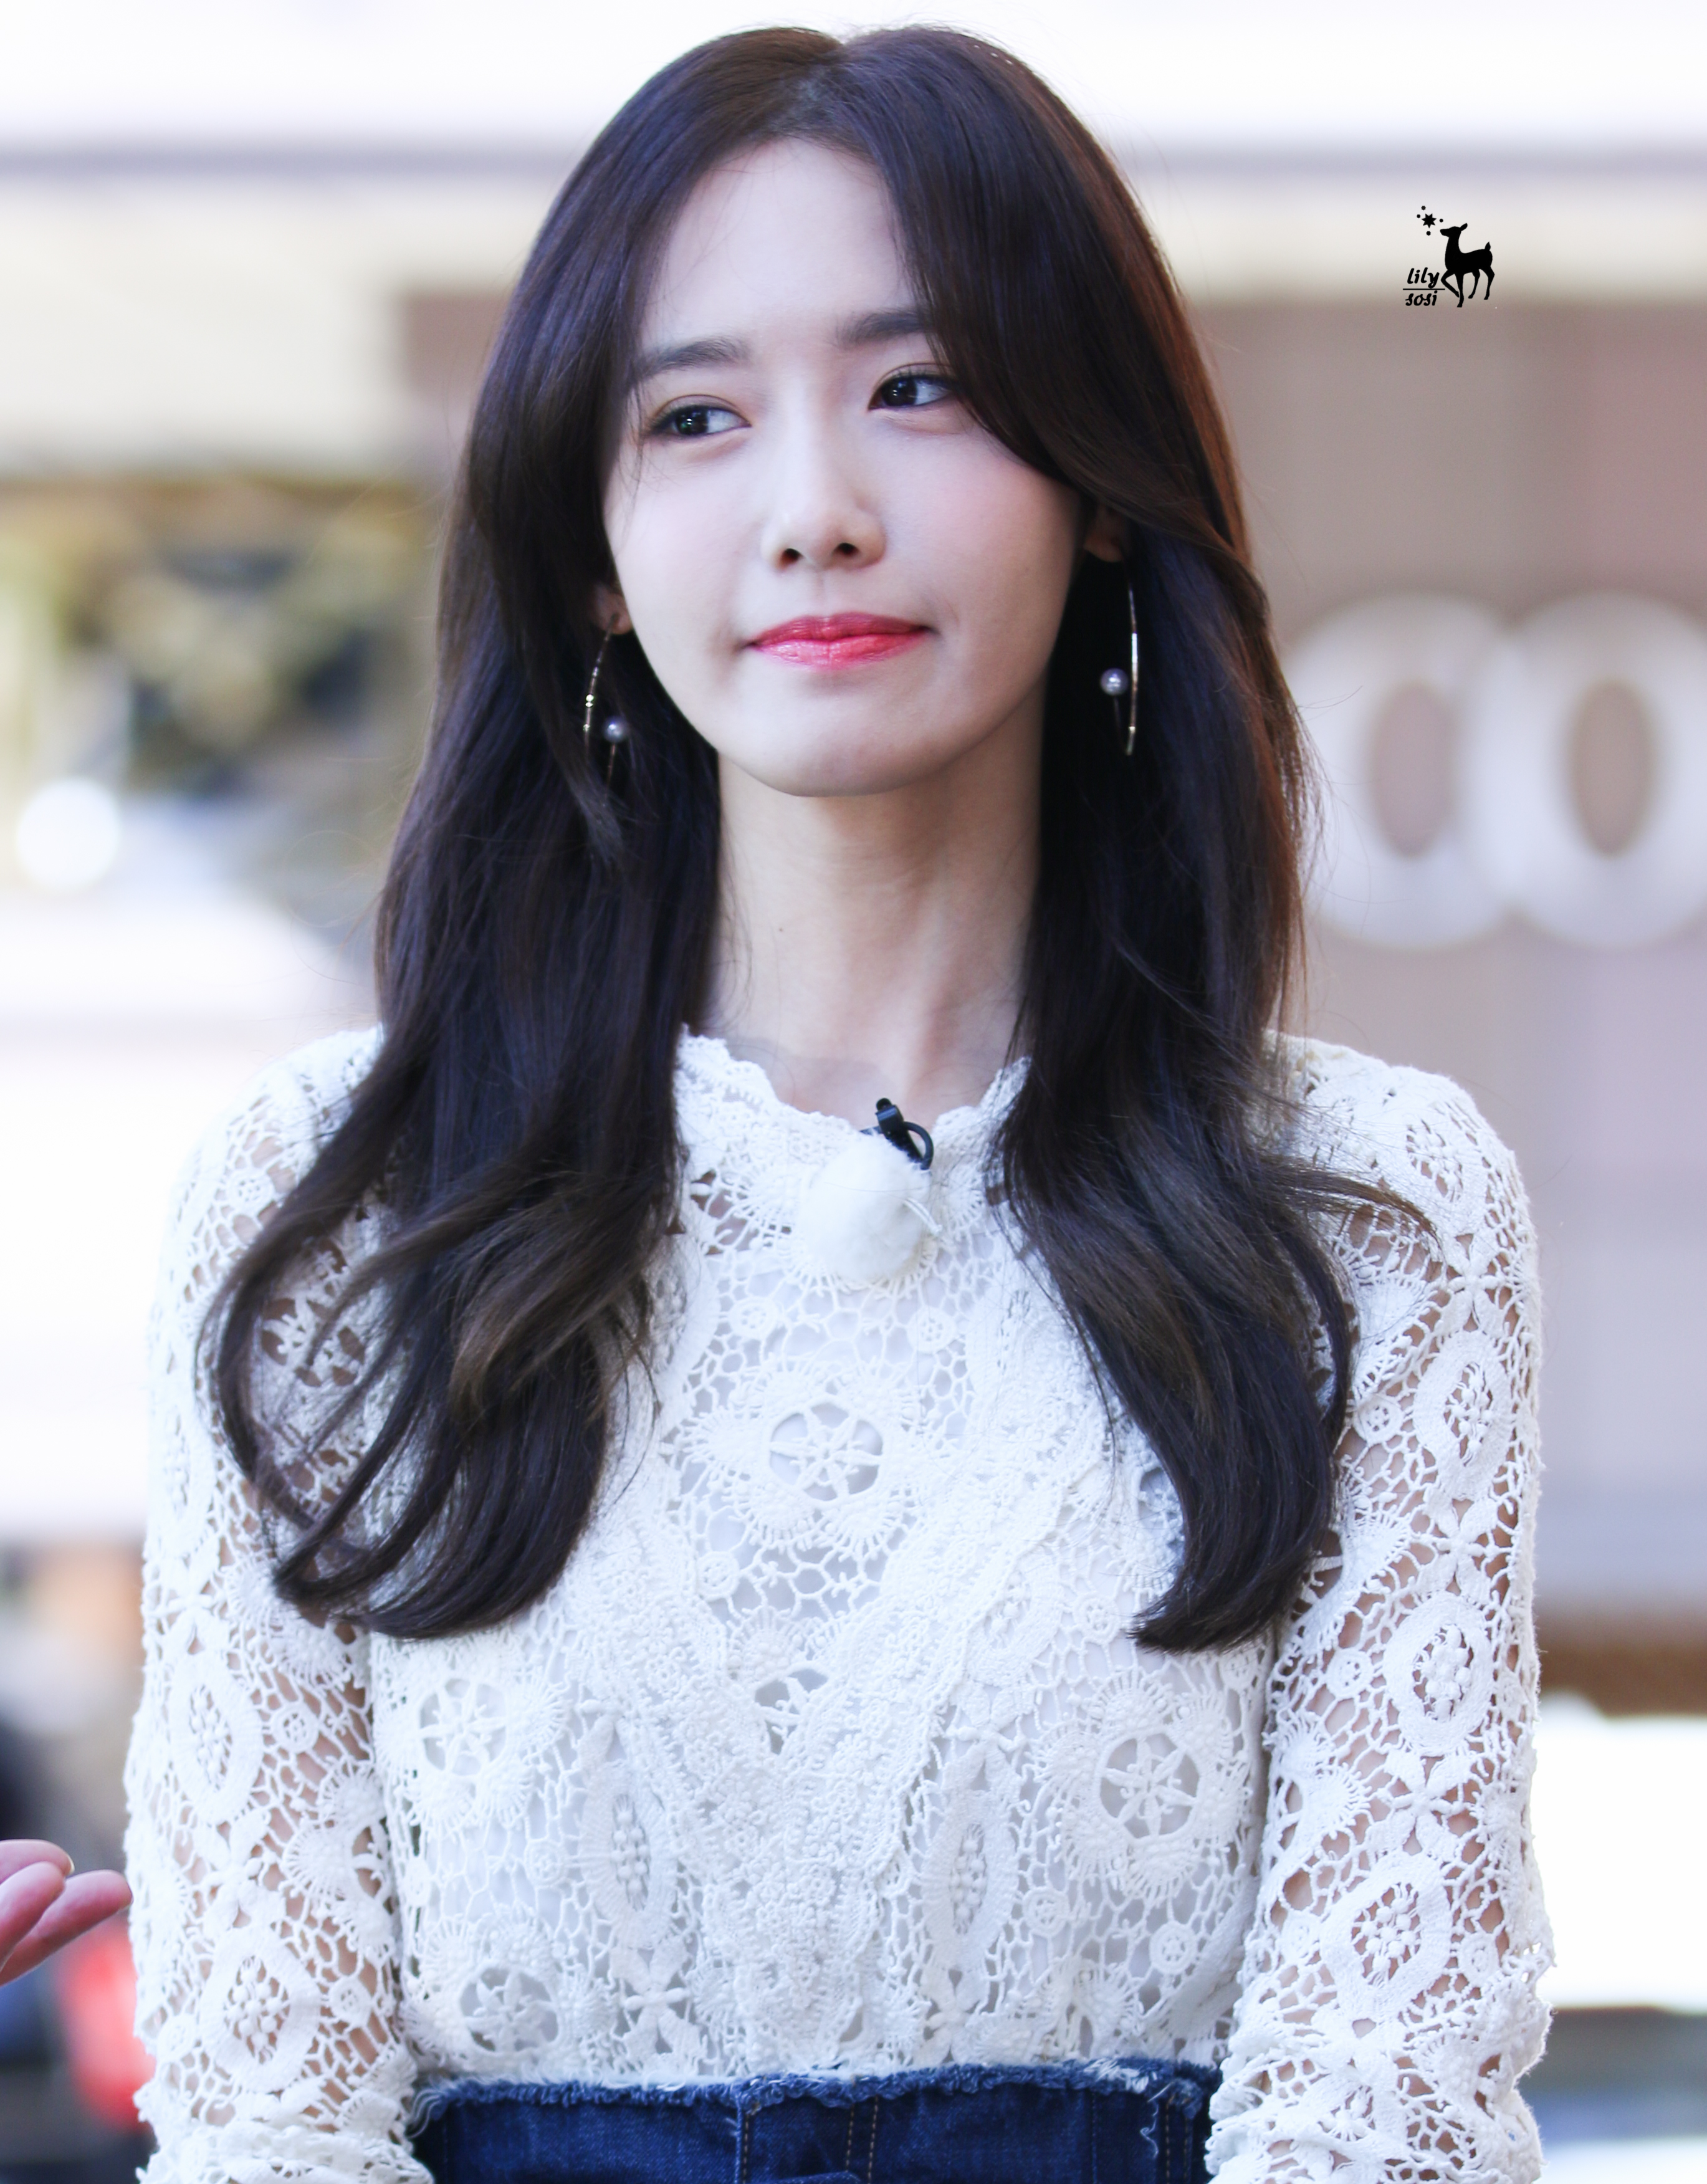 Yoona 160920 Taxi Recording Manuth Chek S Soshi Site